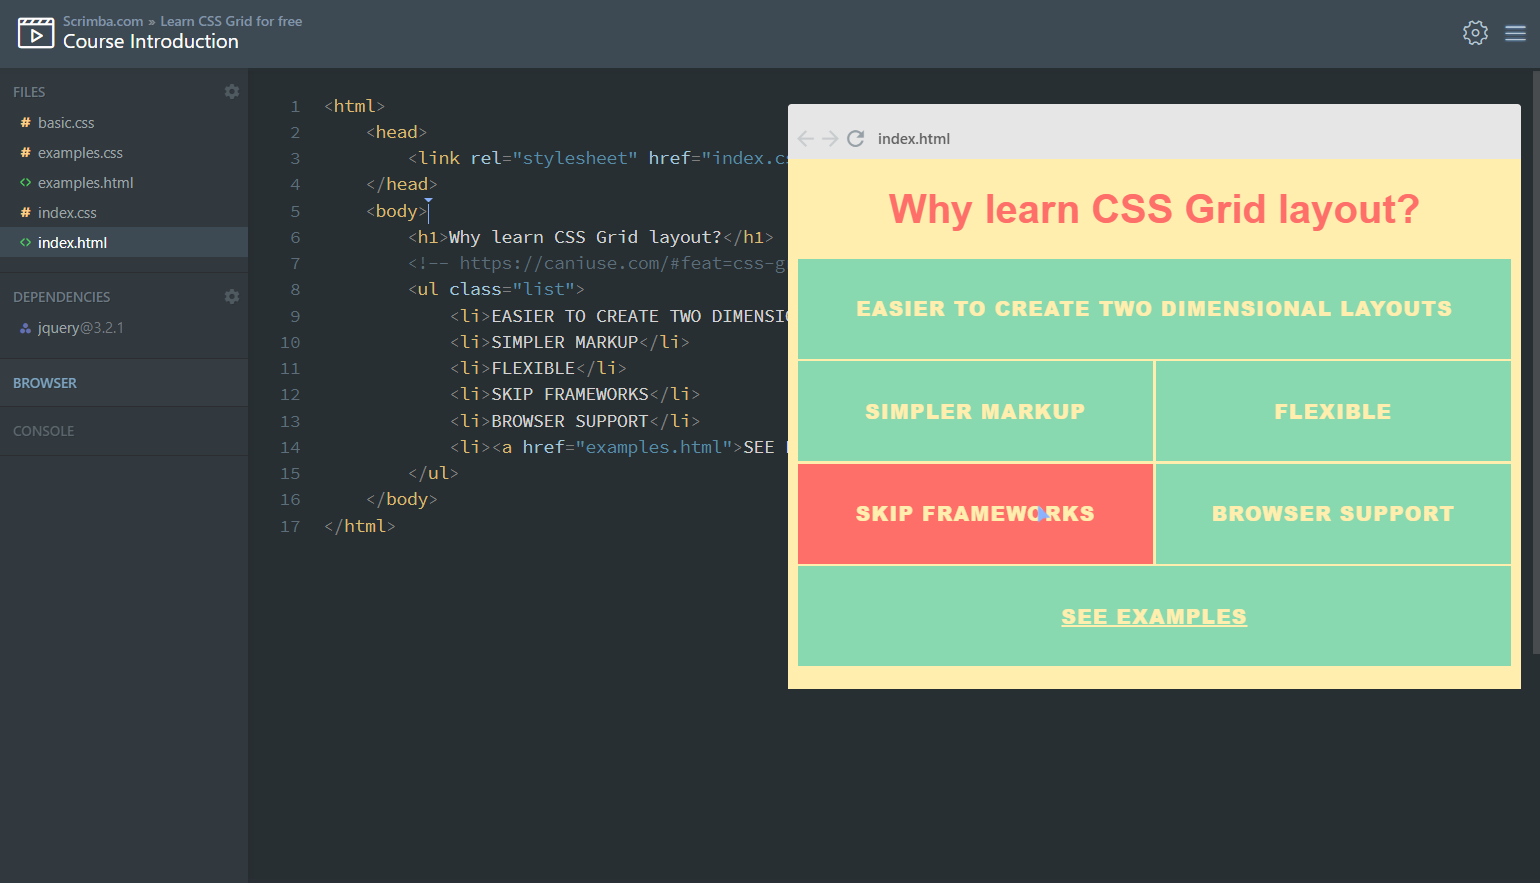 A screen shot from the FREE LEARN CSS course Provided by  SCRIMBA.com